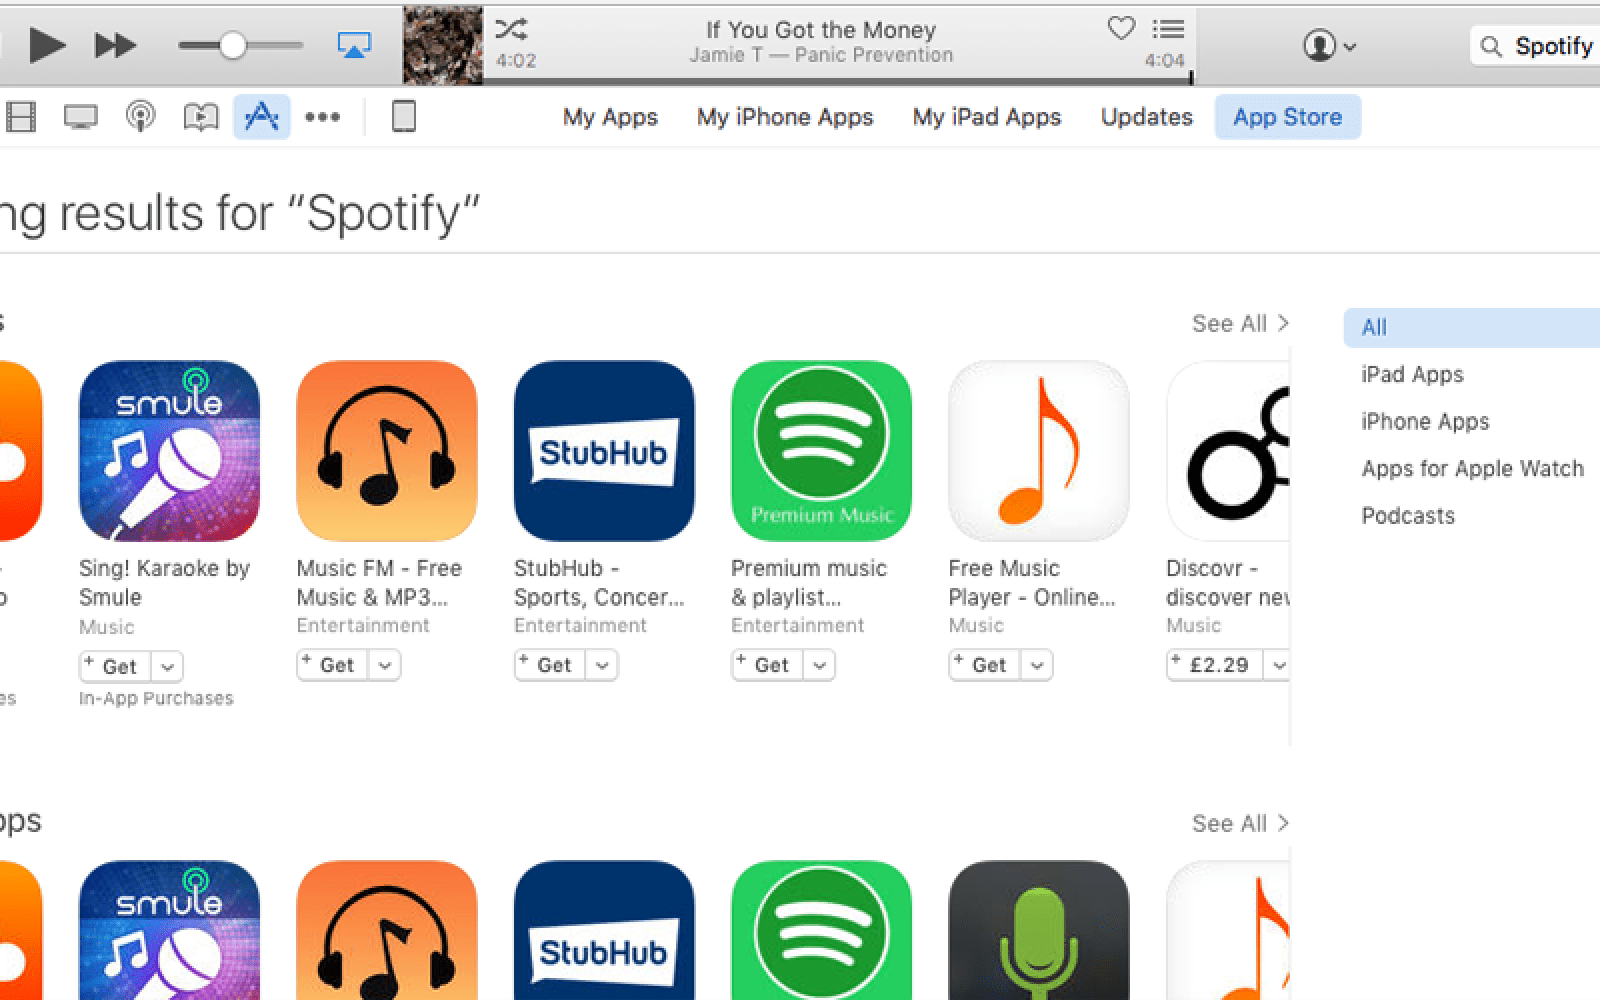 Search problems in iOS & Mac App Stores, with major apps failing to